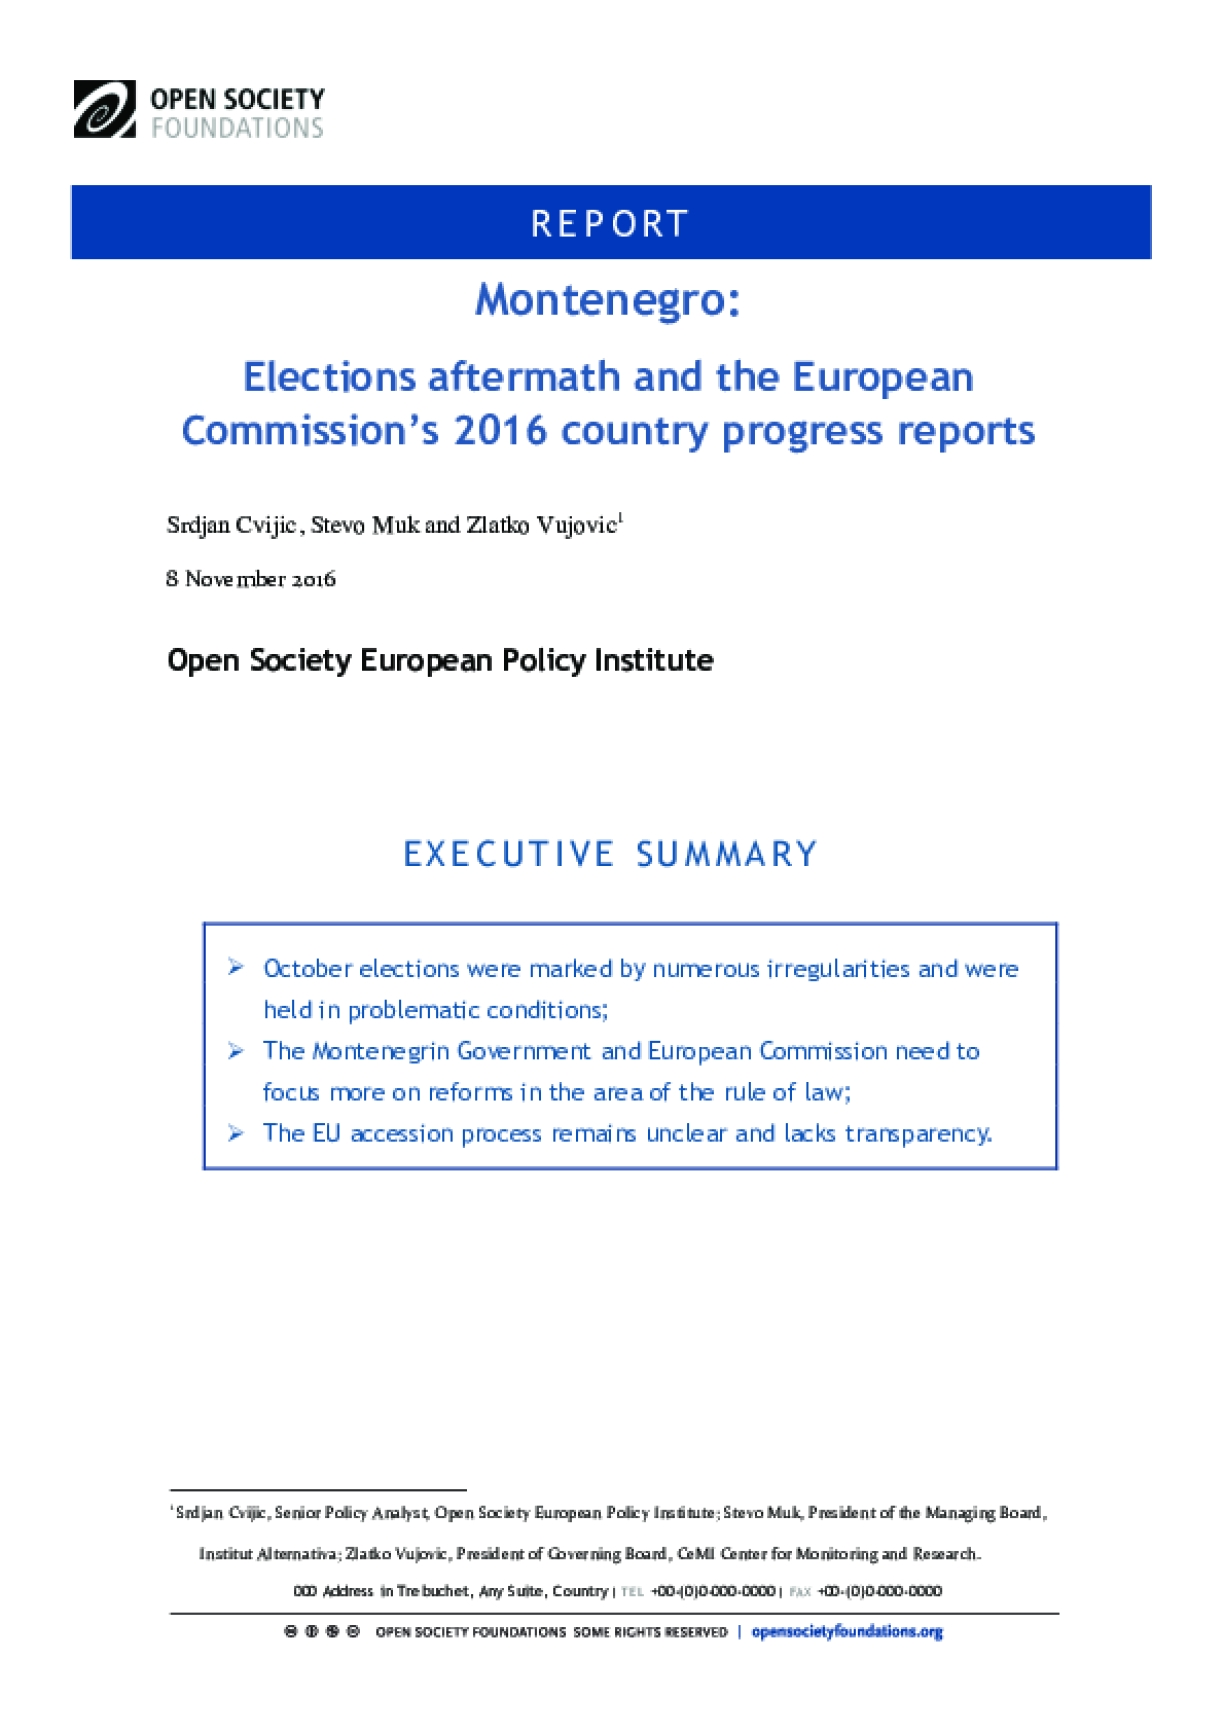 Montenegro: Elections Aftermath and the European Commission's 2016 Country Progress Reports